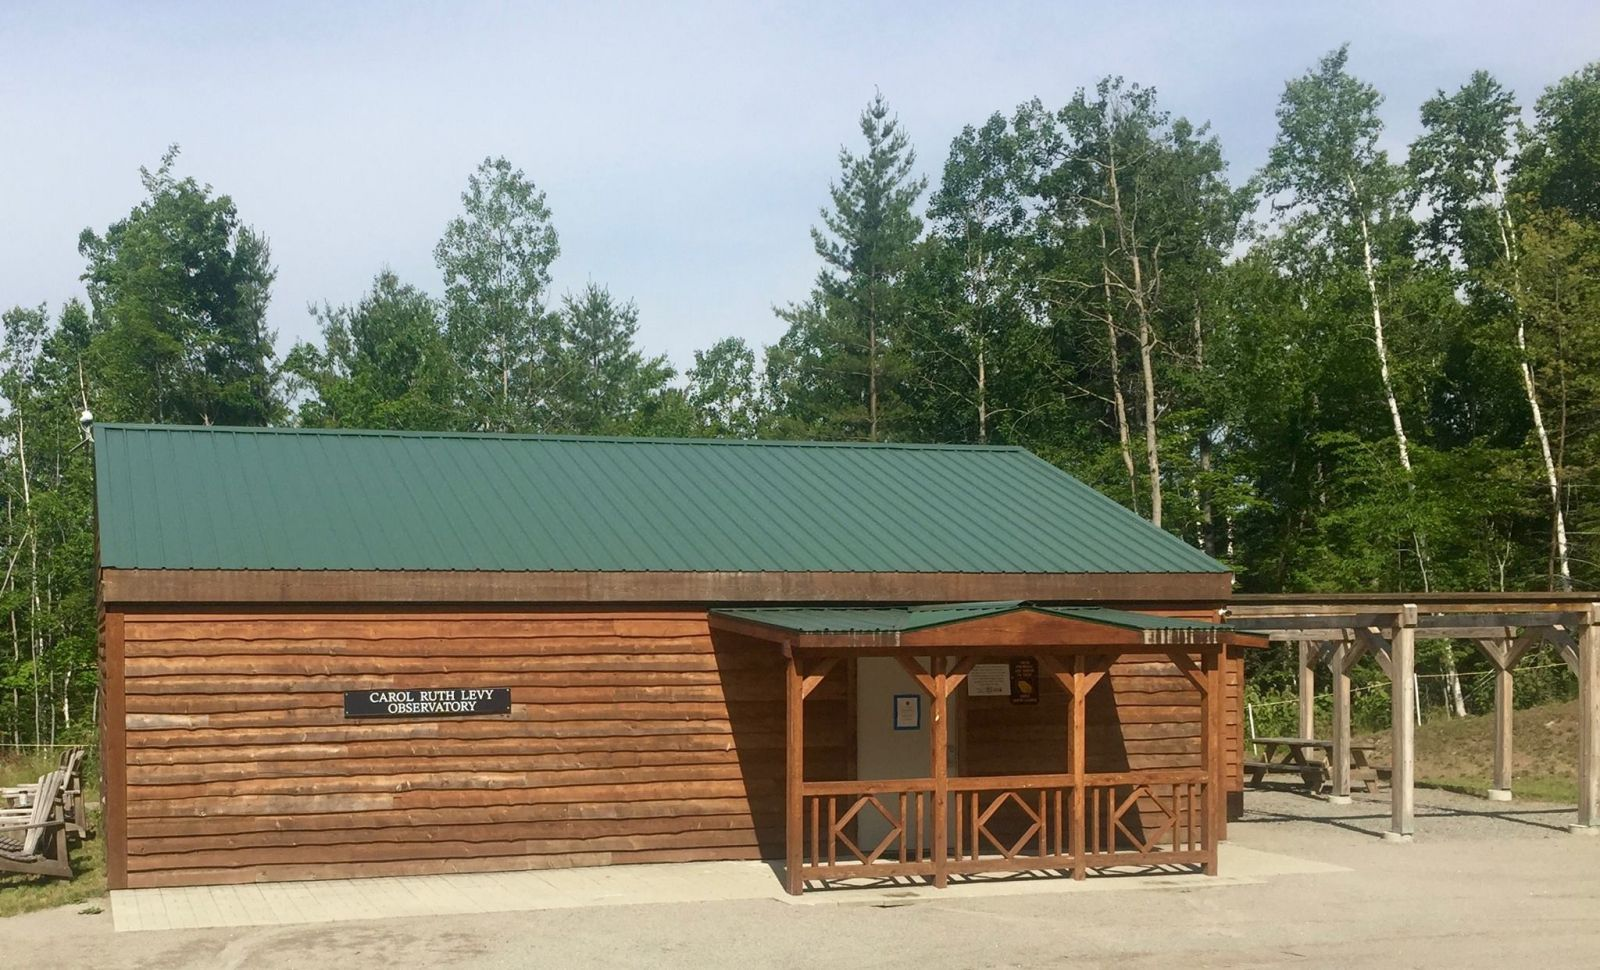 The roll-off roof observatory. Photo: Adirondack Public Observatory